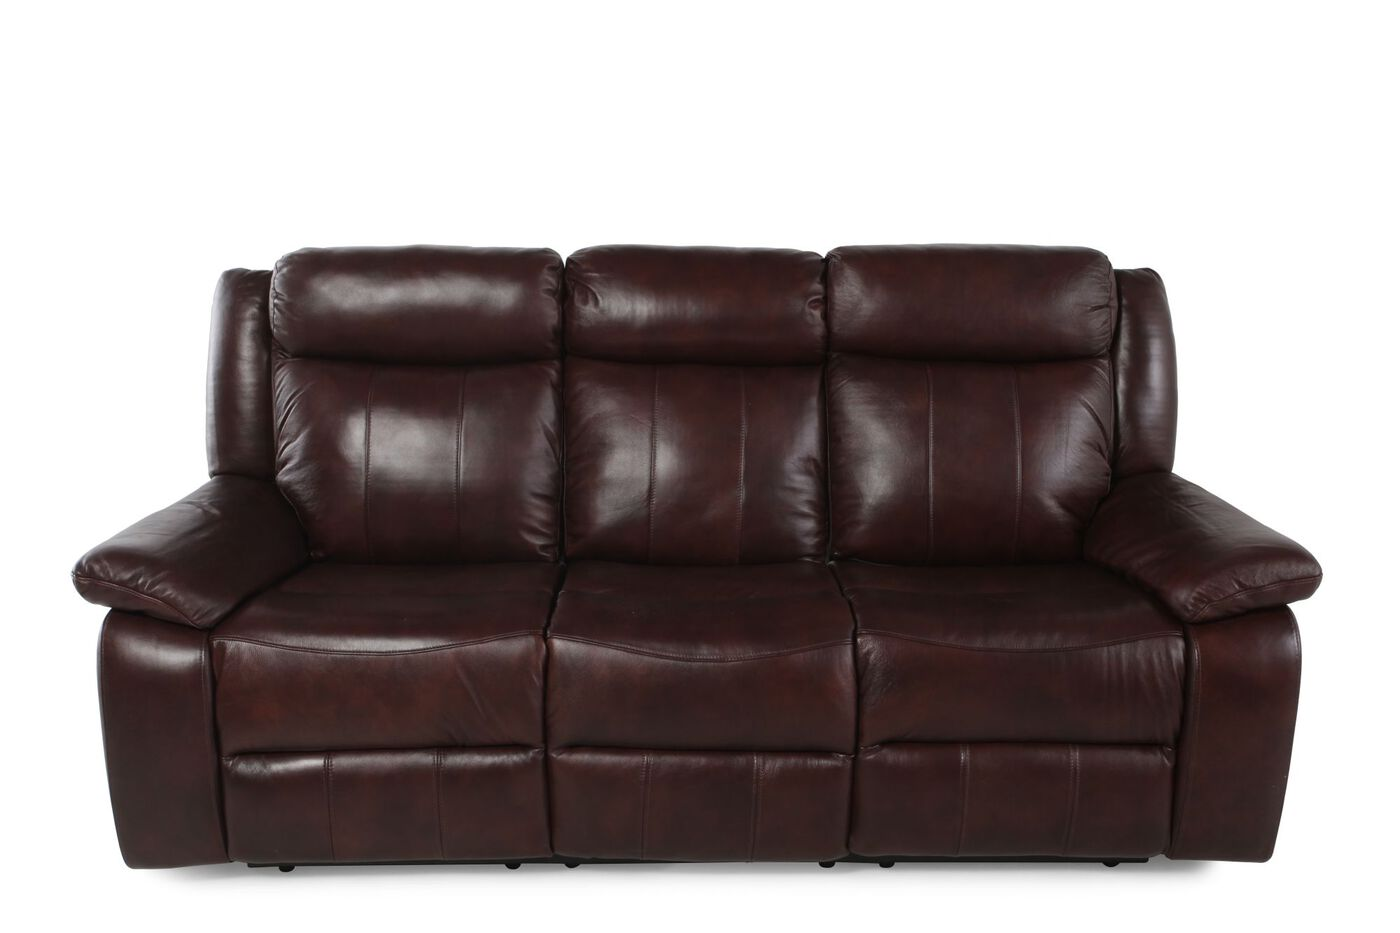 Boulevard brown three seat power reclining sofa mathis brothers furniture - Sofa reclinable ...